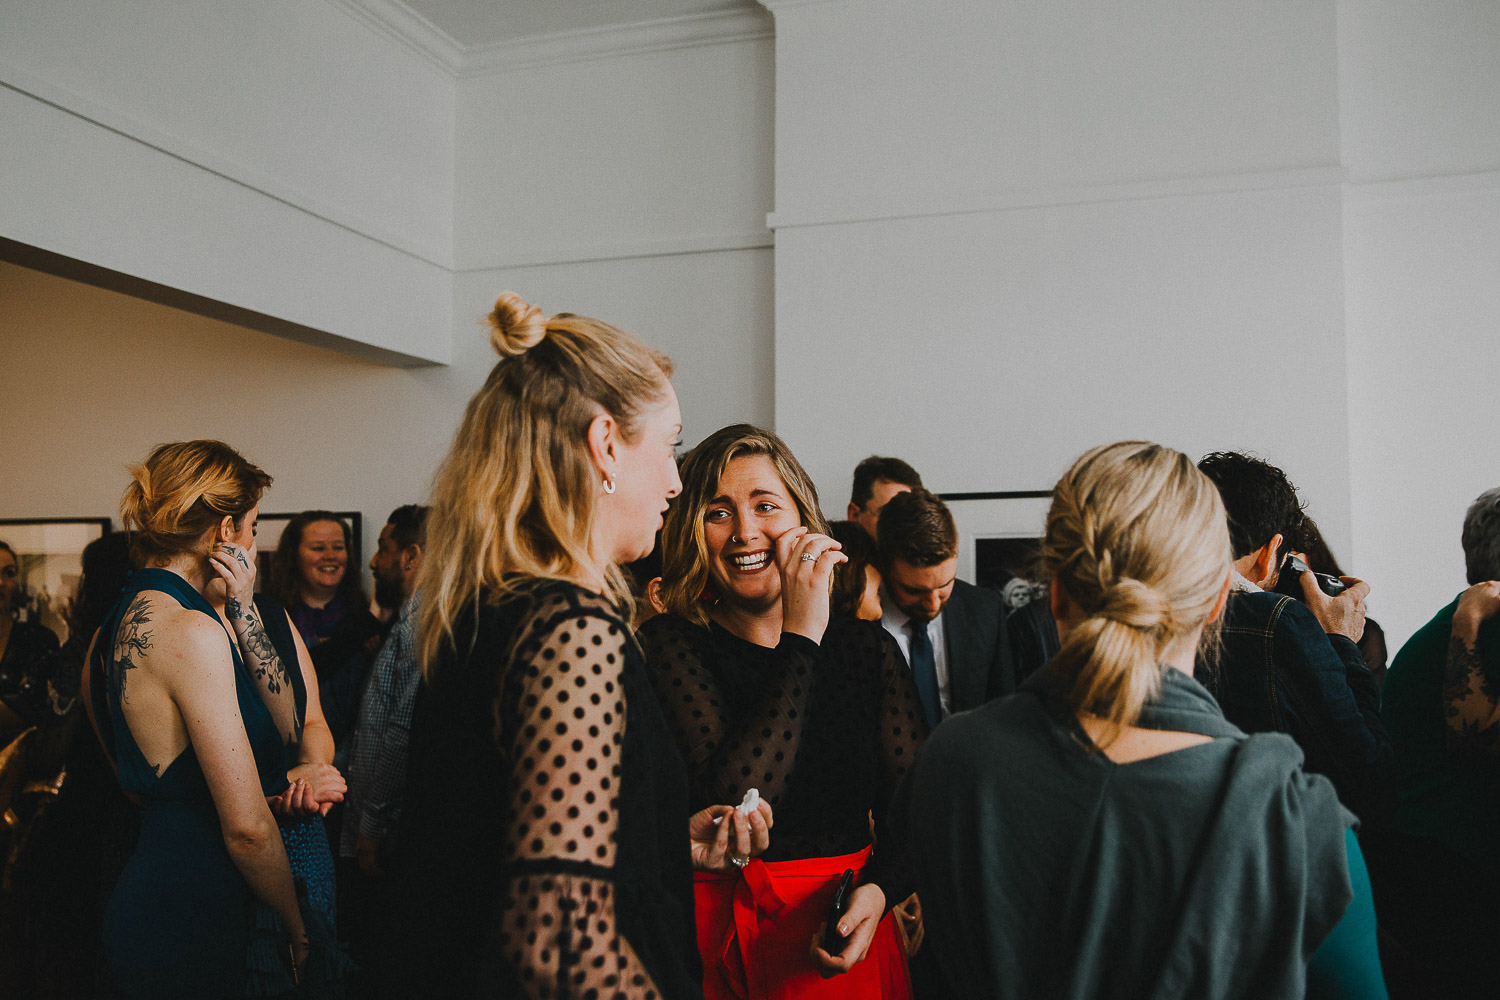 Guests mingling at modern art gallery wedding